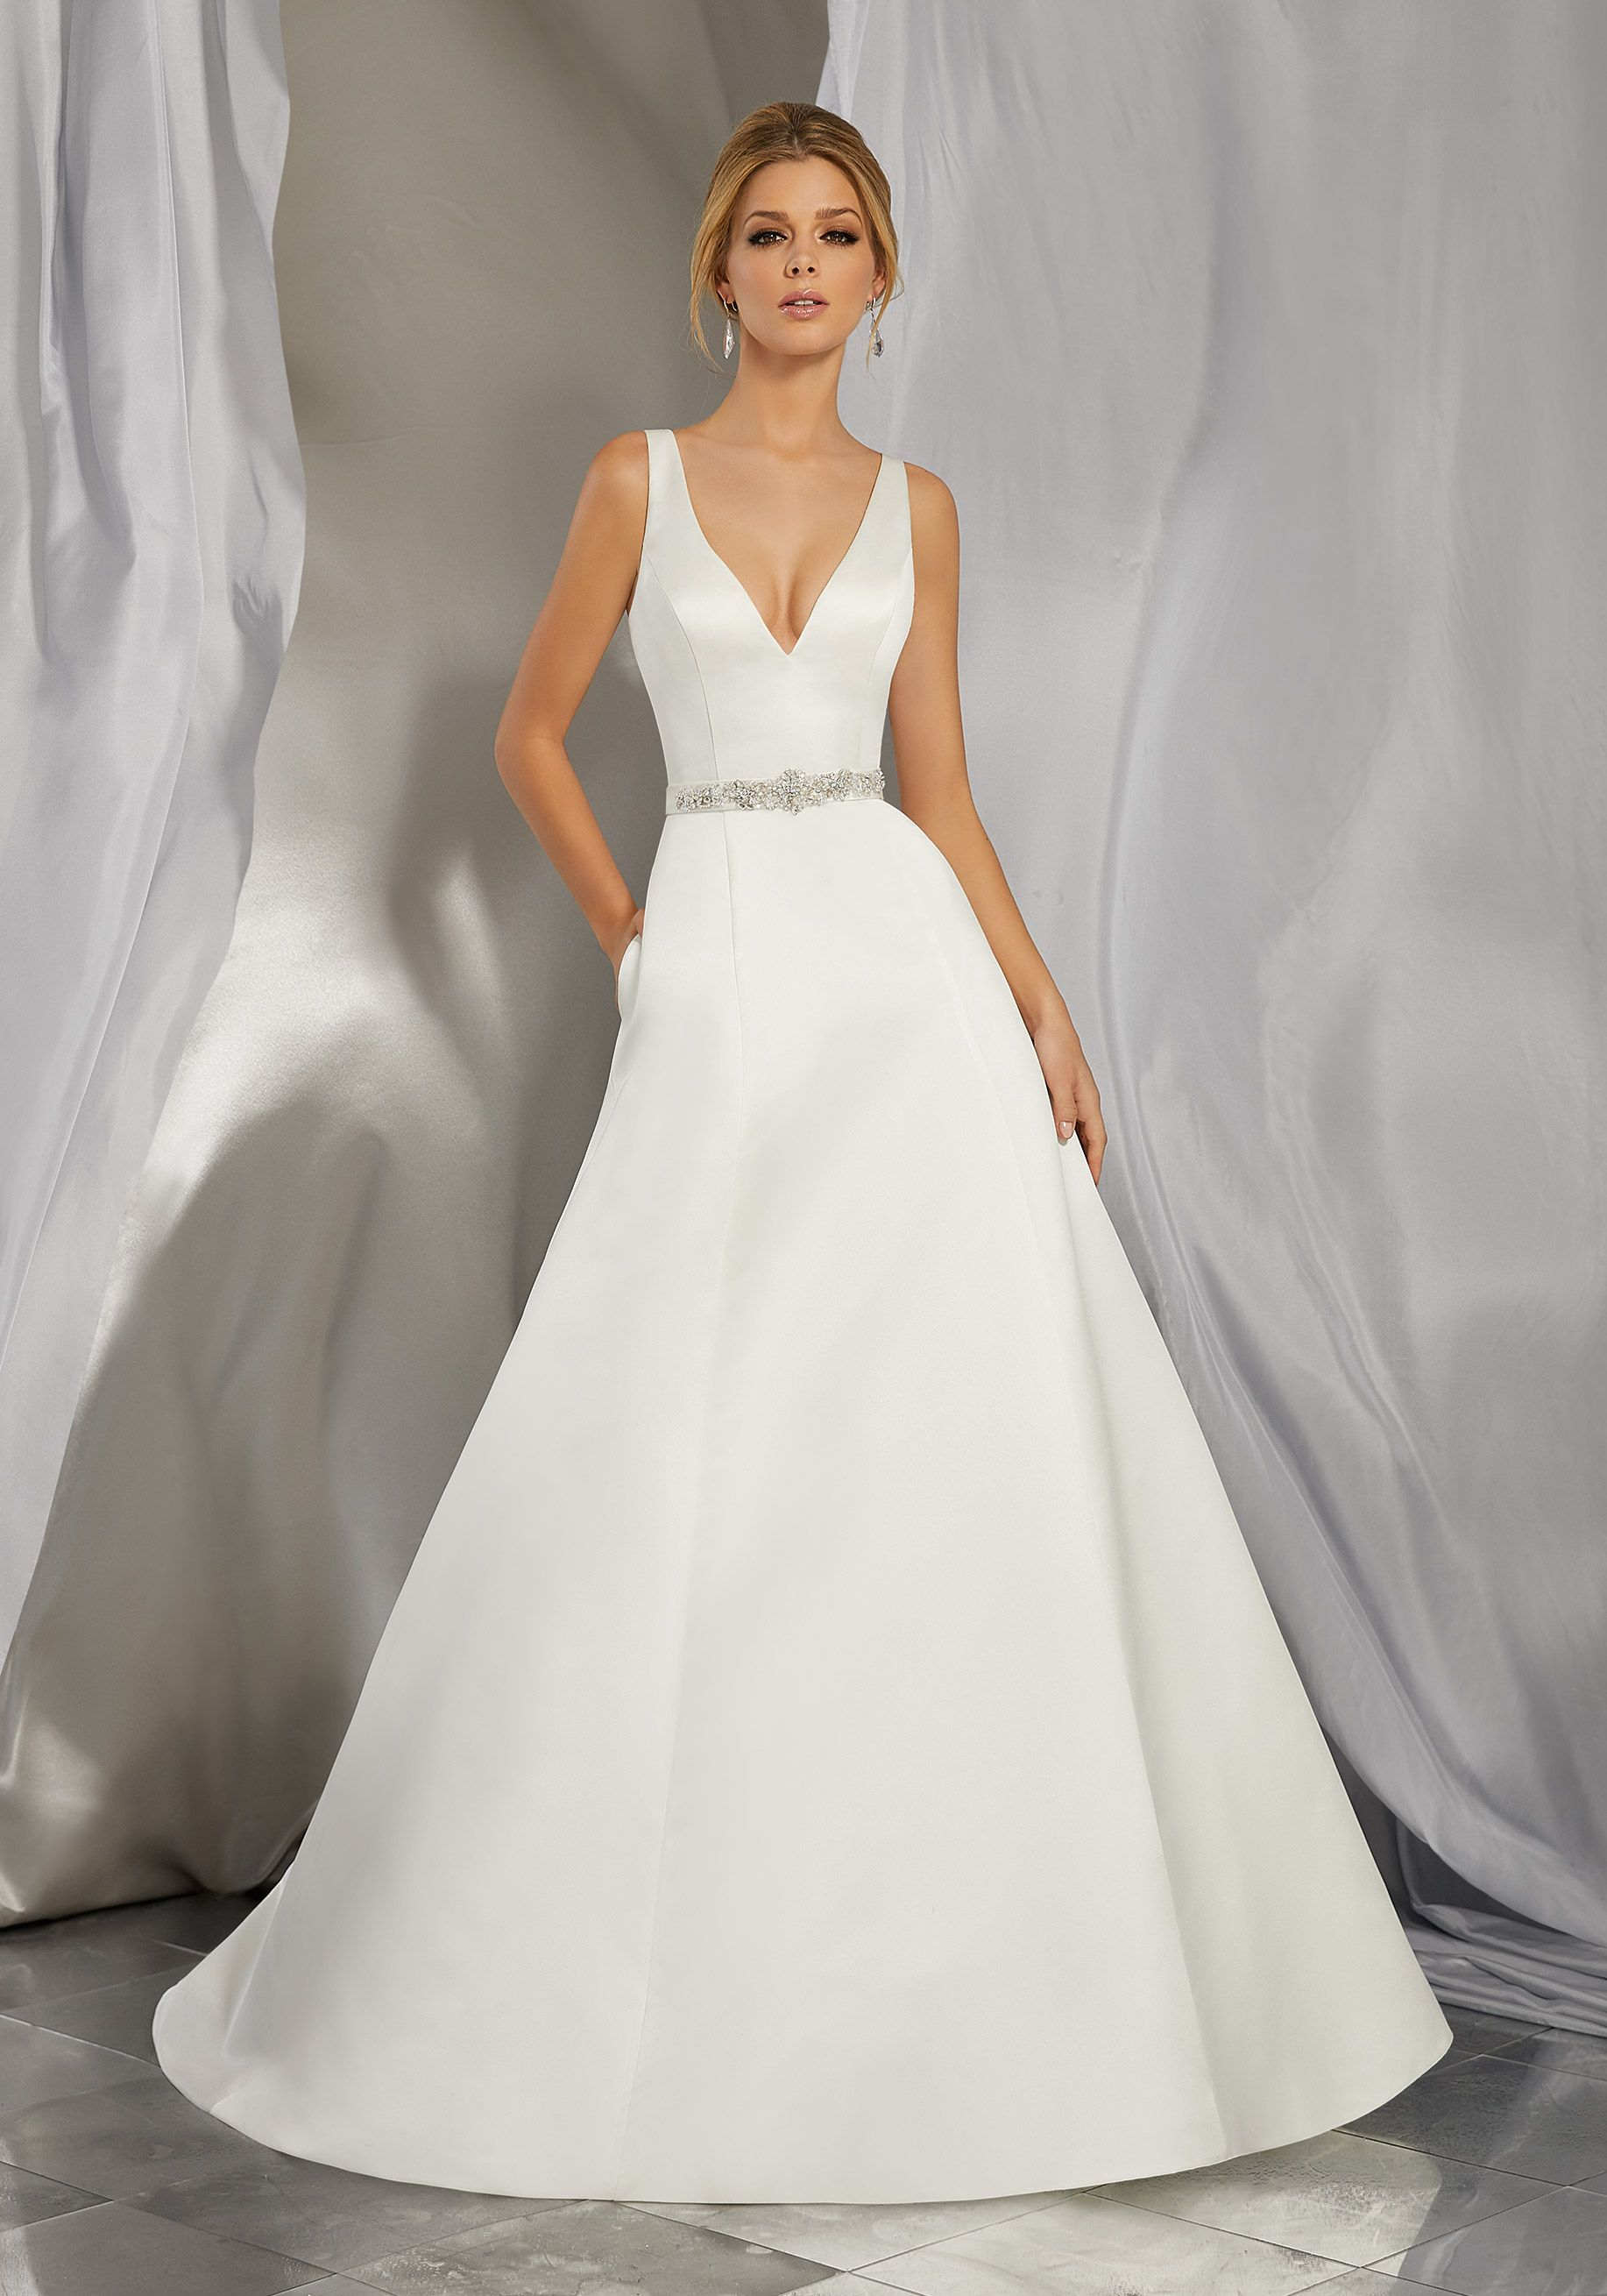 a29f01d017f7 Classic and Timeless, This Duchess Satin Slim A-Line Gown Features a Deep-V  Neckline and Open Back. A Removable Diamanté Encrusted Satin Belt, ...